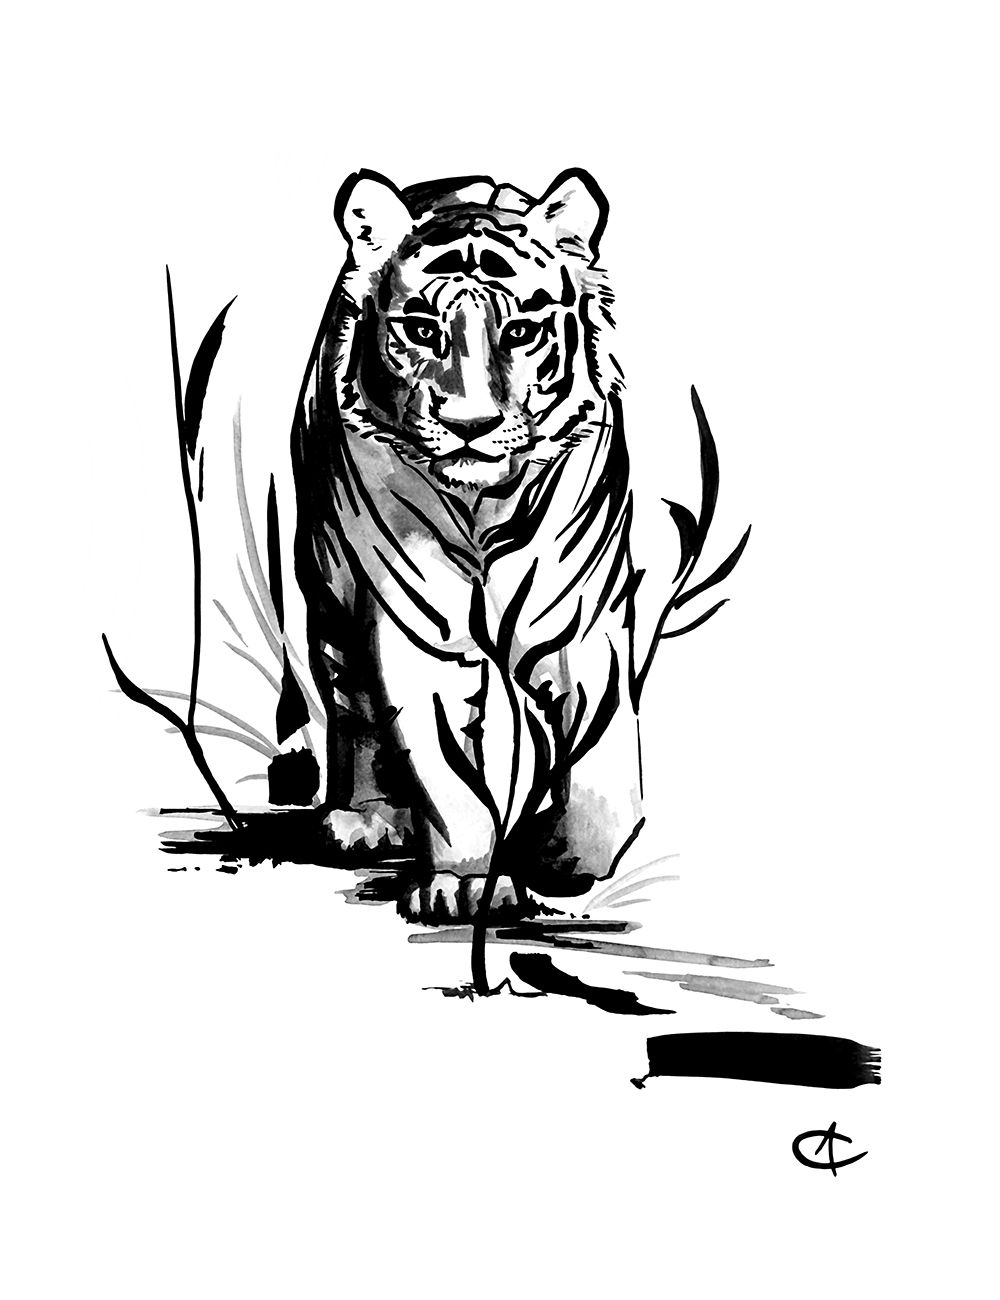 Ink Flow: Tiger - Alora Cholette - 2017 - Hand painted india ink. Prints and merch available in store: https://www.designbyhumans.com/shop/AloraCholette/